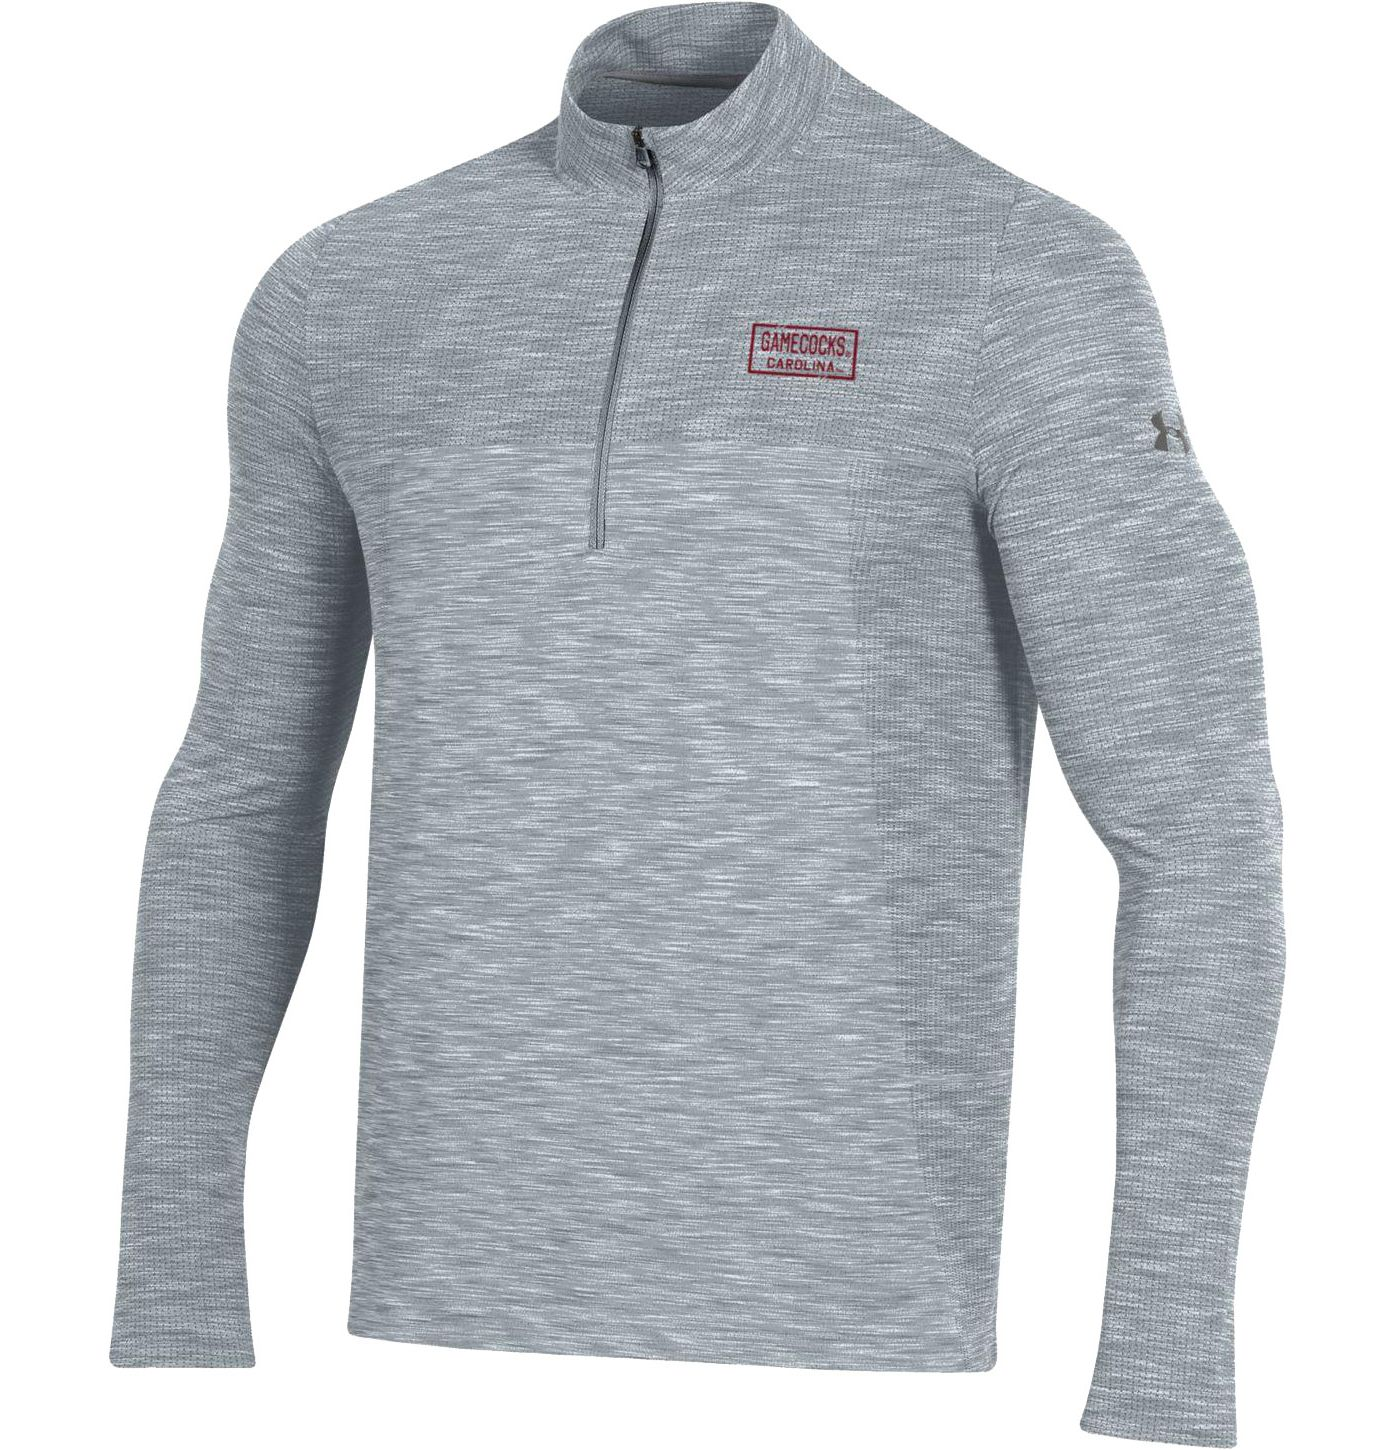 Under Armour Men's South Carolina Gamecocks Grey Vanish Quarter-Zip Shirt